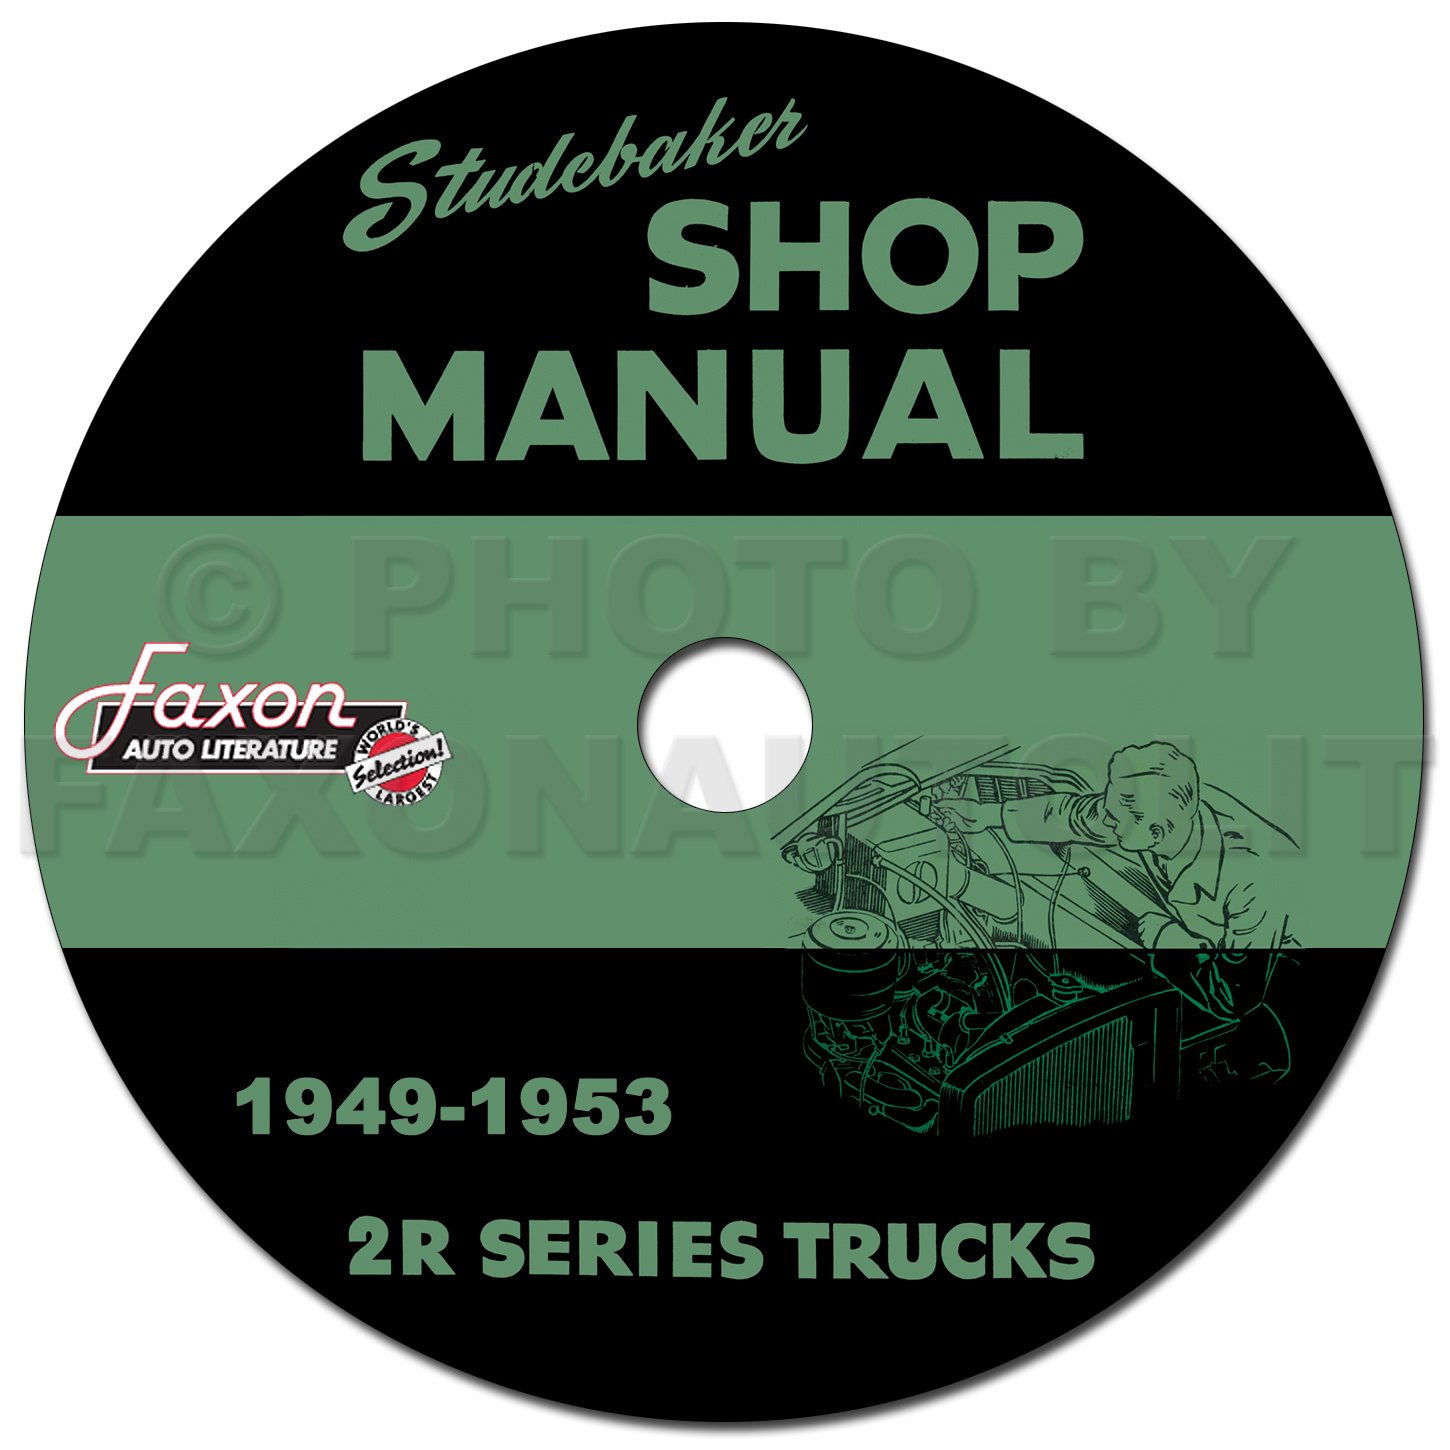 1949-1953 Studebaker 2R Series Pickup Truck Shop Manual Reprint